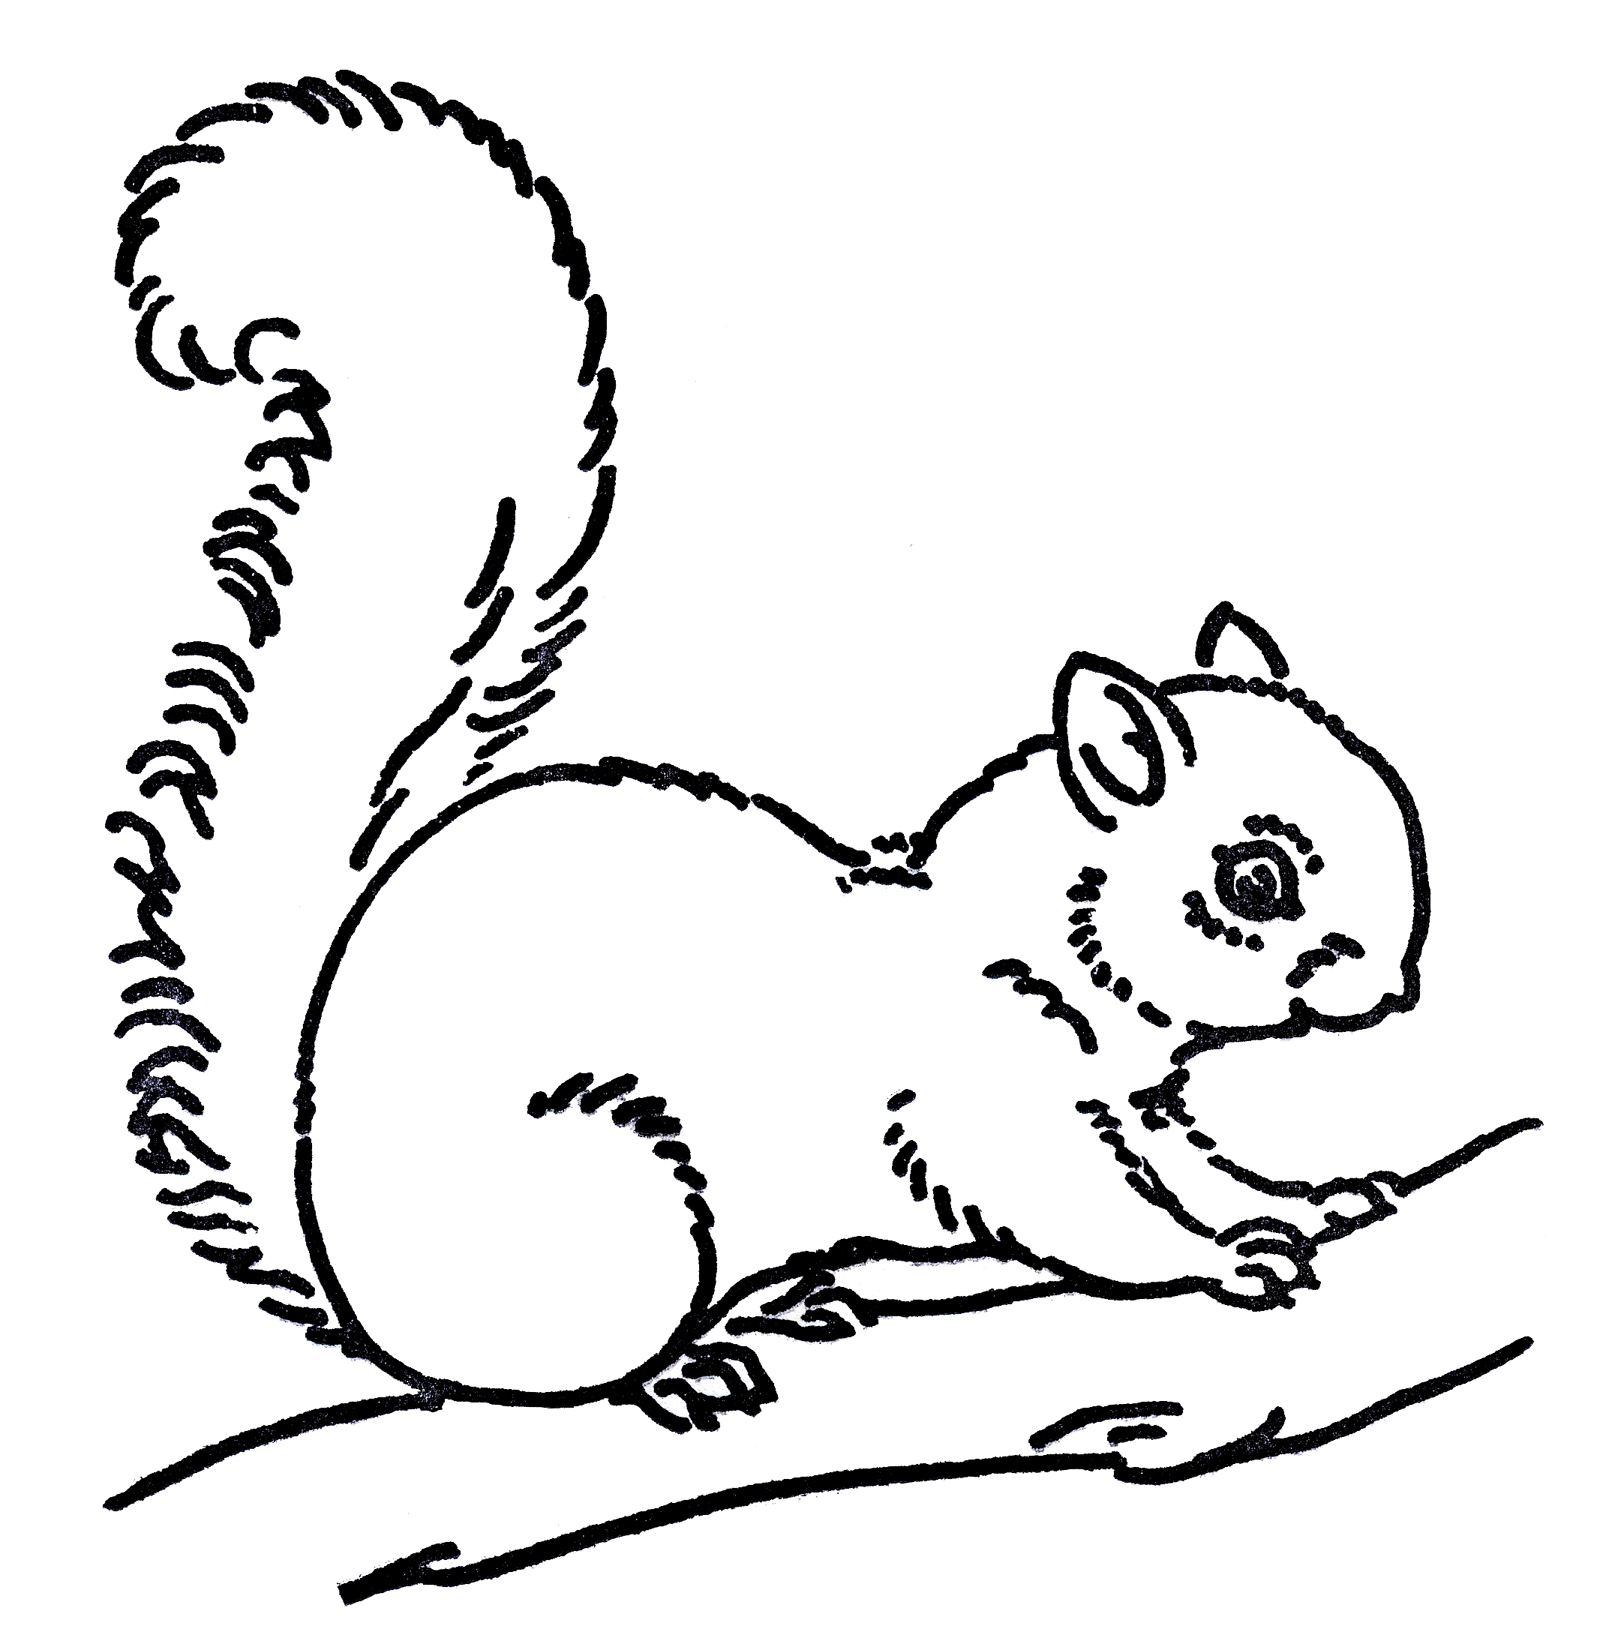 Line Drawing For Kids : Free line art images squirrel drawings the graphics fairy